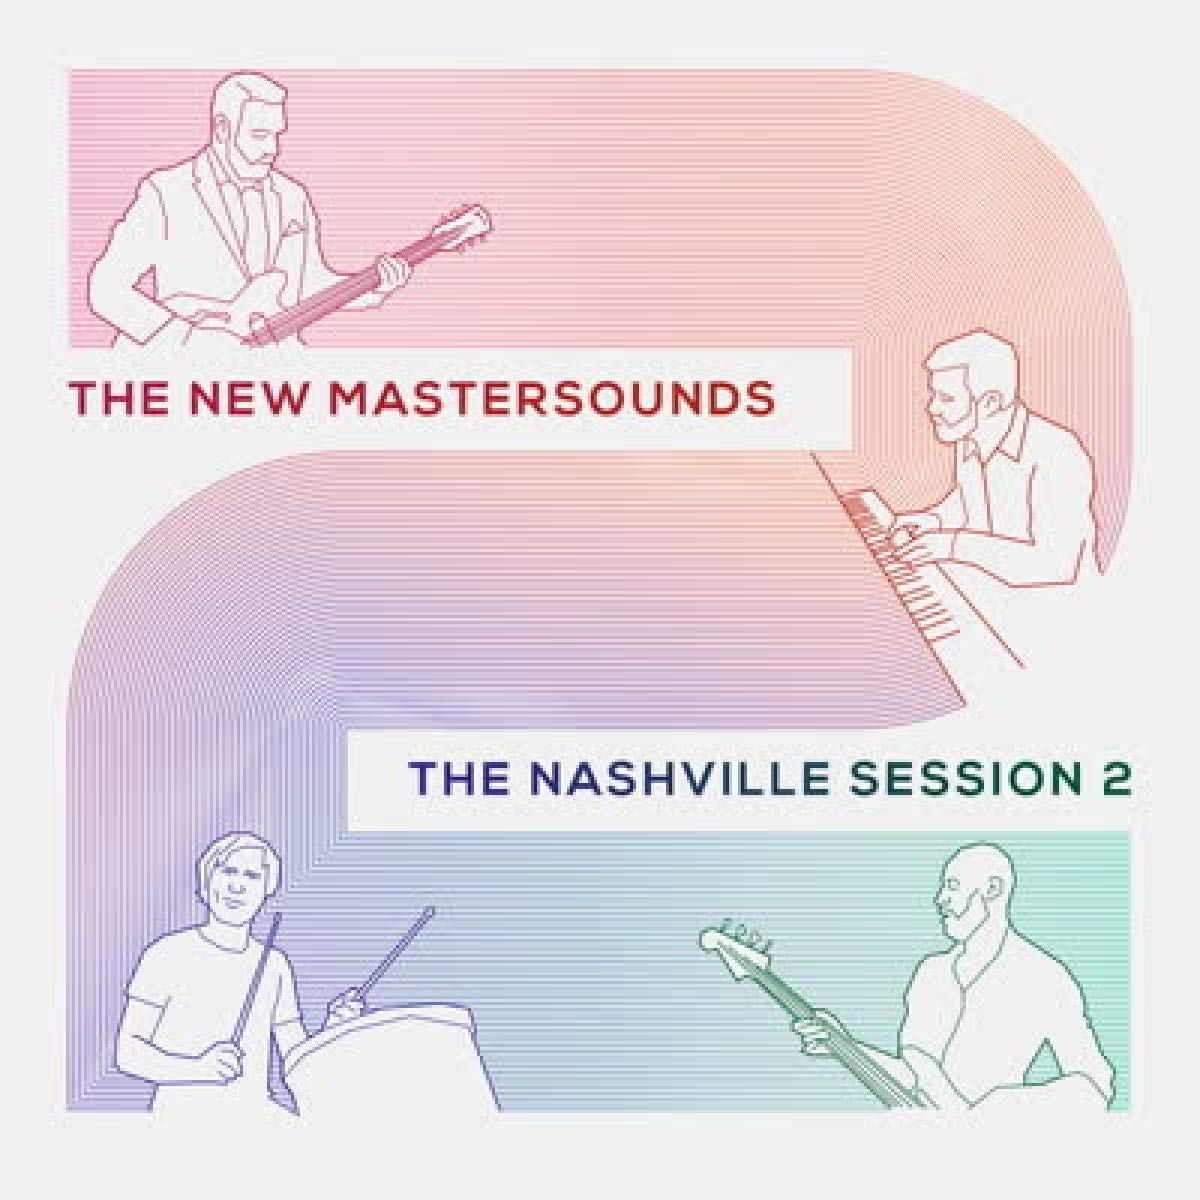 THE NEW MASTERSOUNDS - The Nashville Session 2 cover